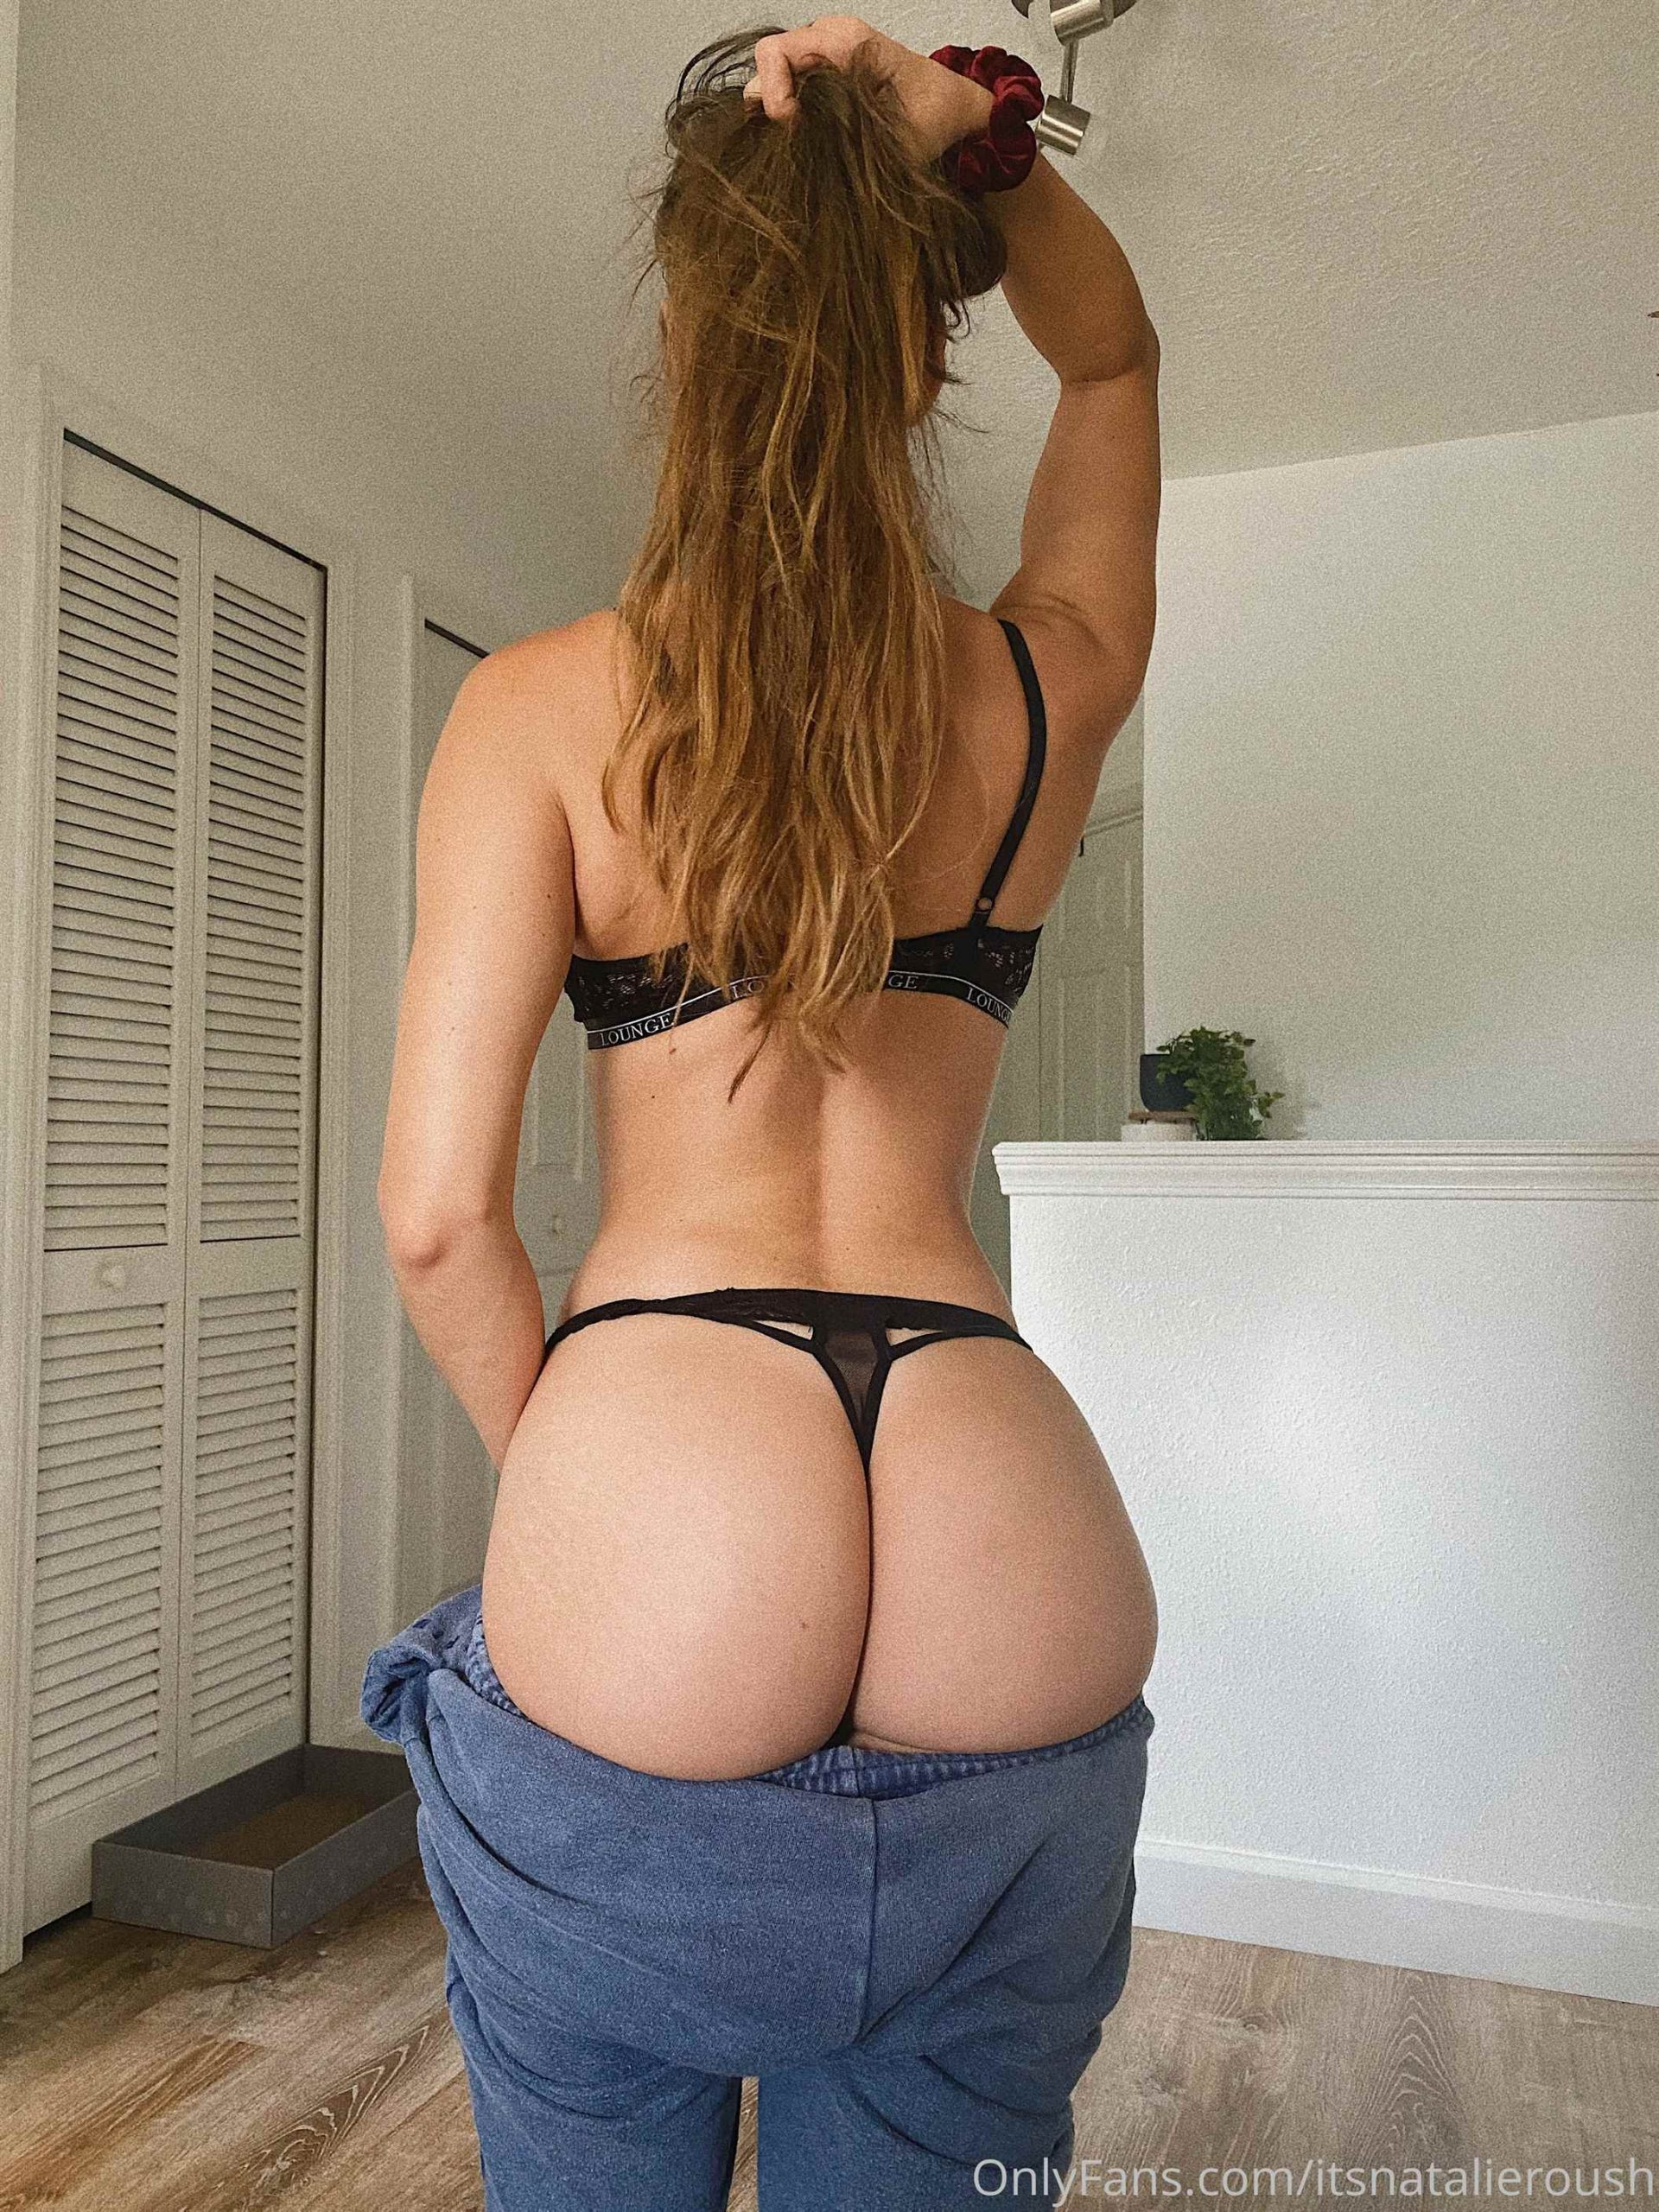 Natalie Roush Nude Leaked Onlyfans Photos 0028